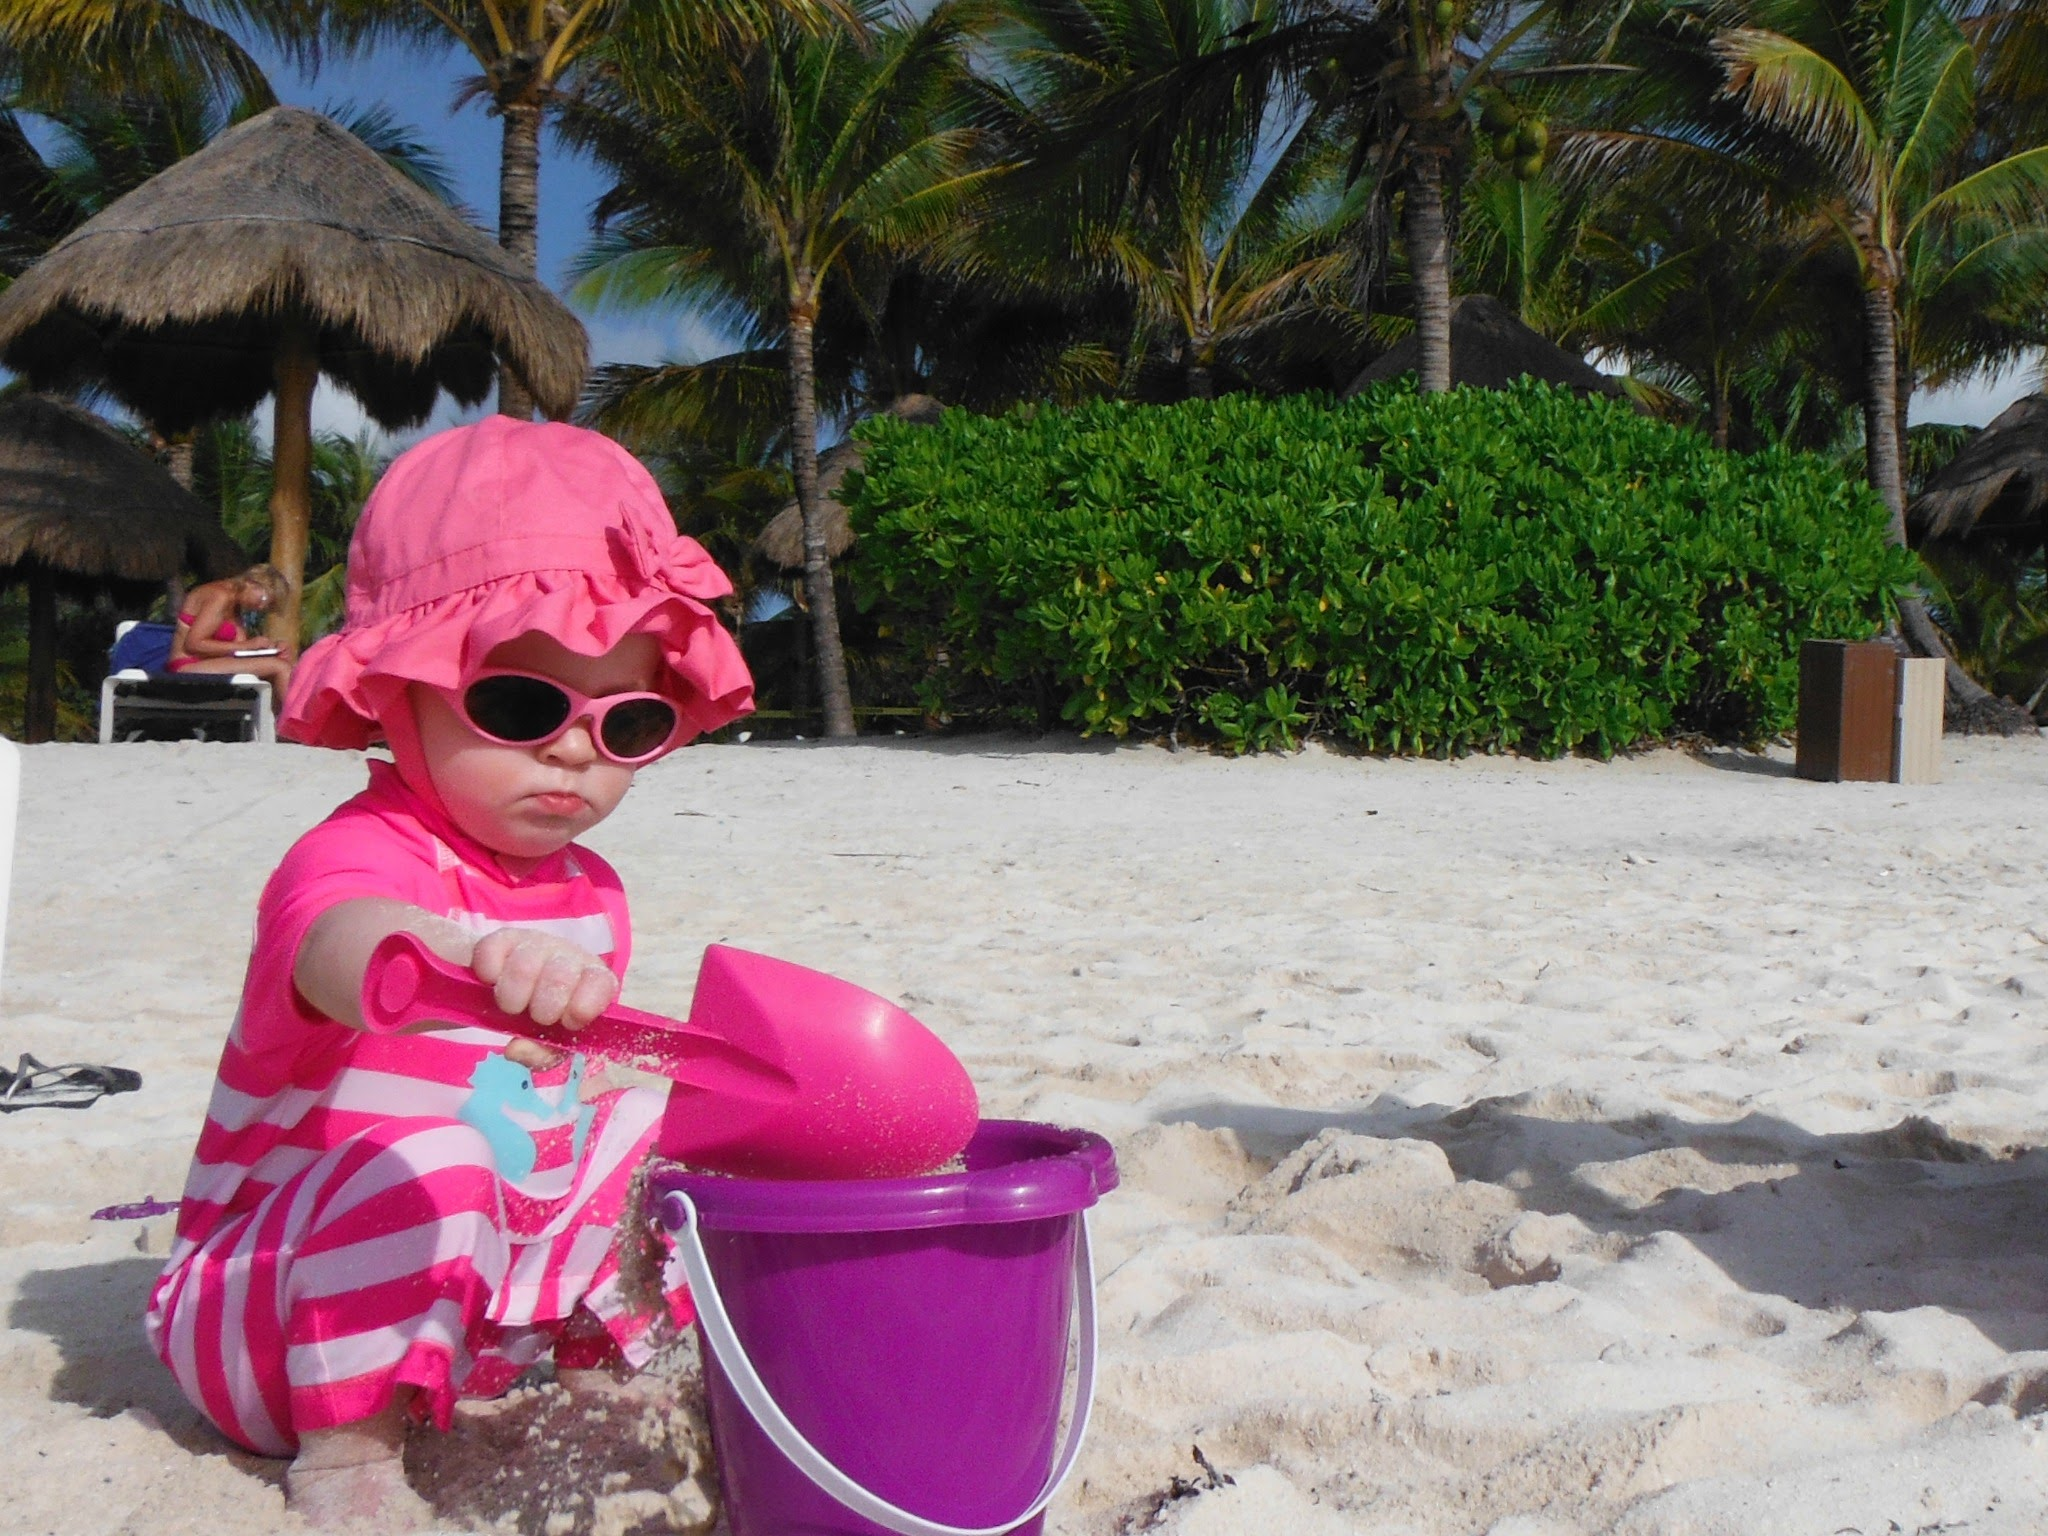 Beach vacation with baby - sun safety